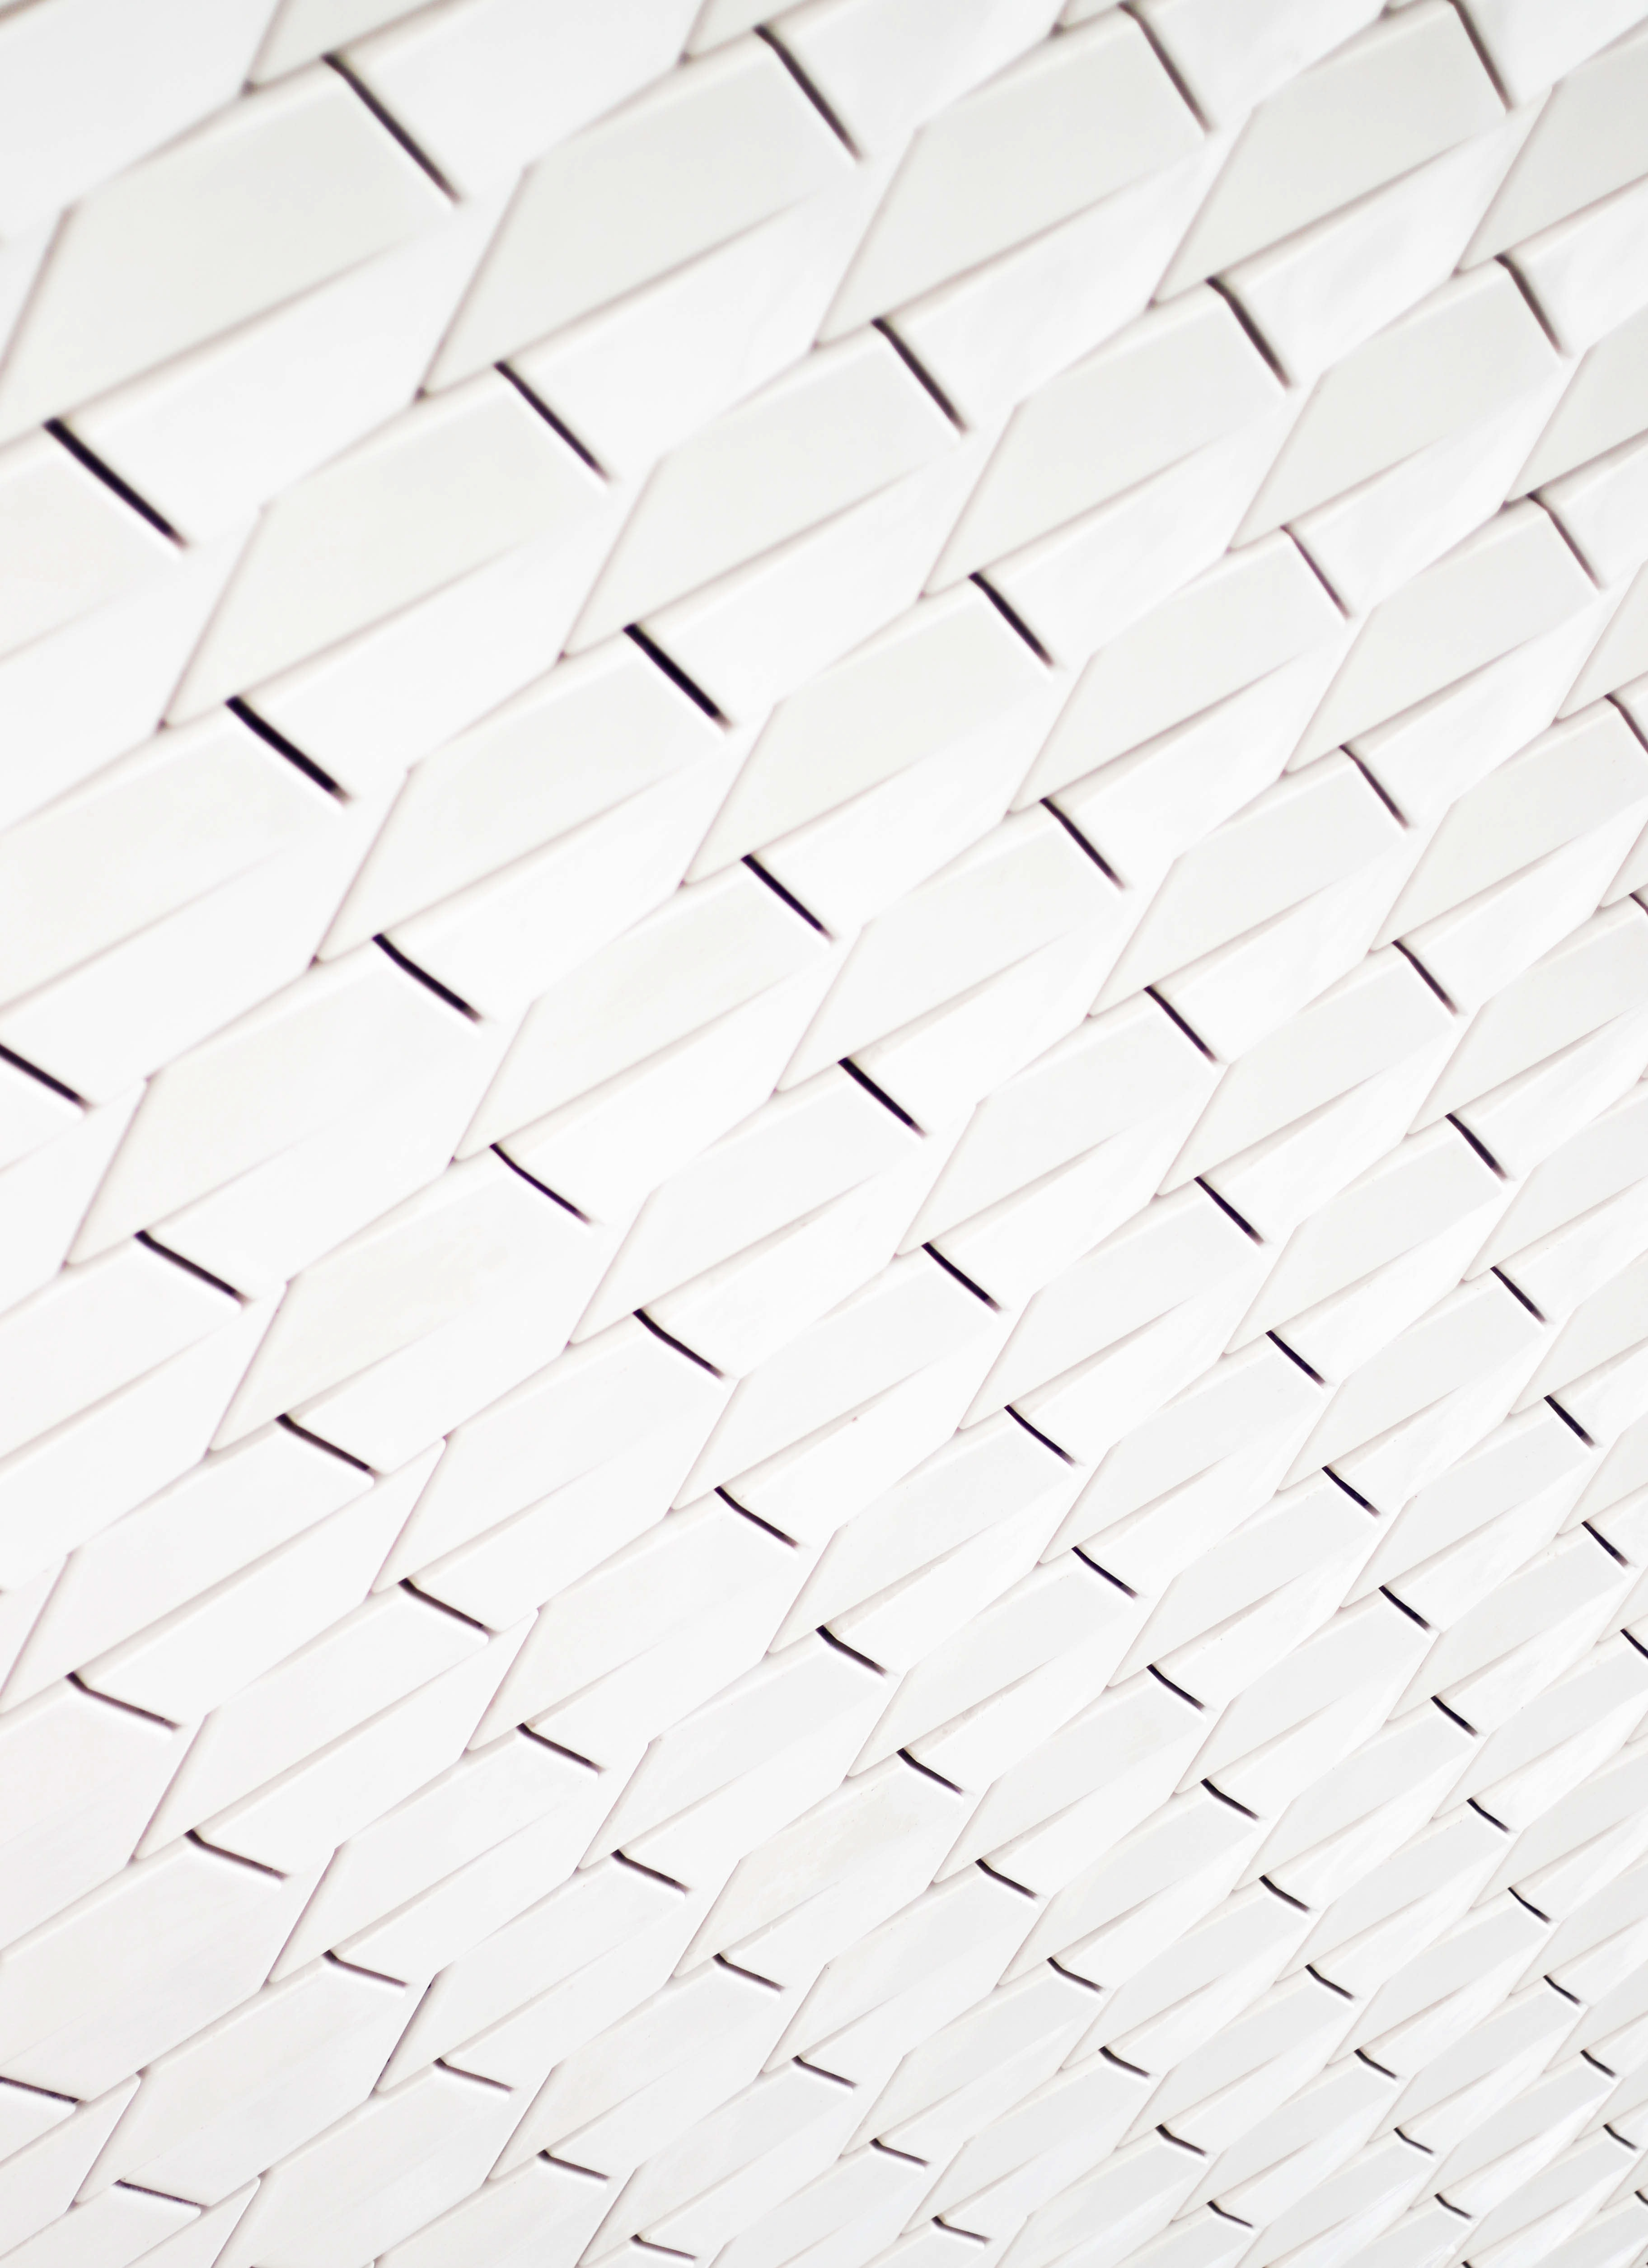 A pattern of white geometric shapes in a facade